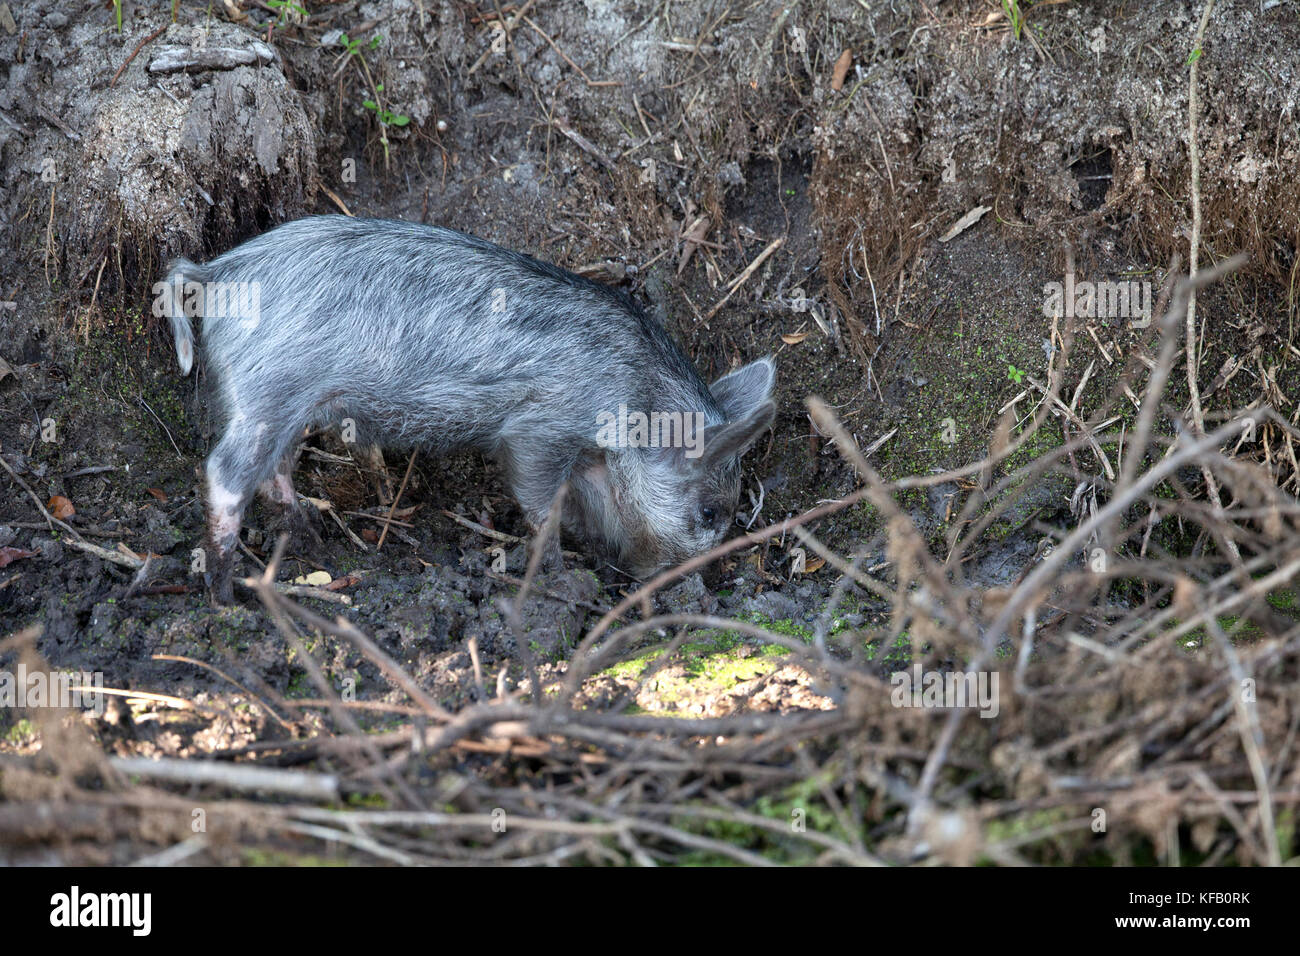 A Wild Baby Pig Digs In The Underbrush At Merritt Island National Wildlife Refuge May